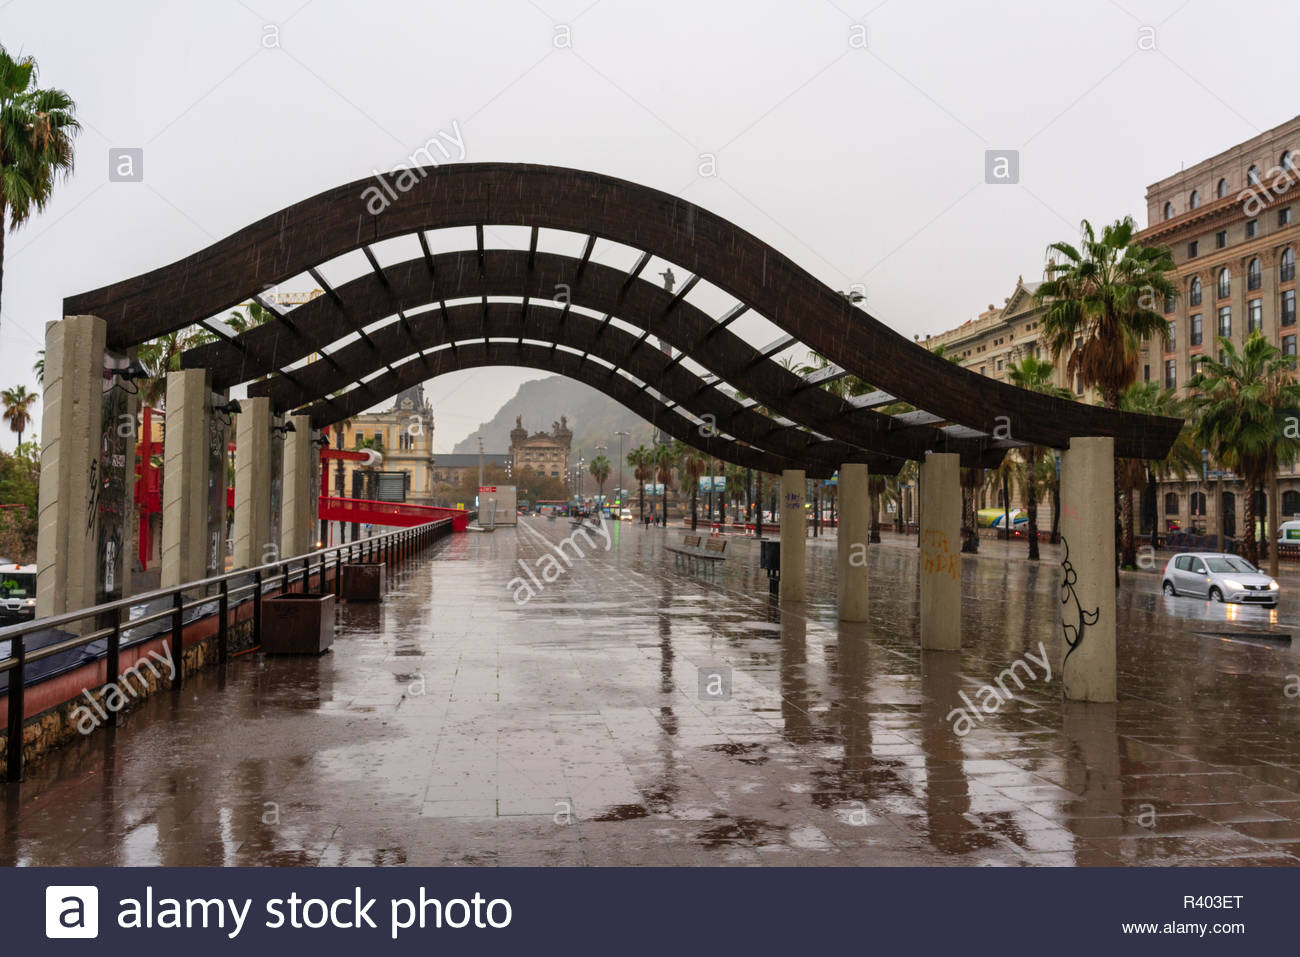 A rainy day in Barcelona City, along the road by the port looking toward Mont Juic, Barcelona City - Stock Image